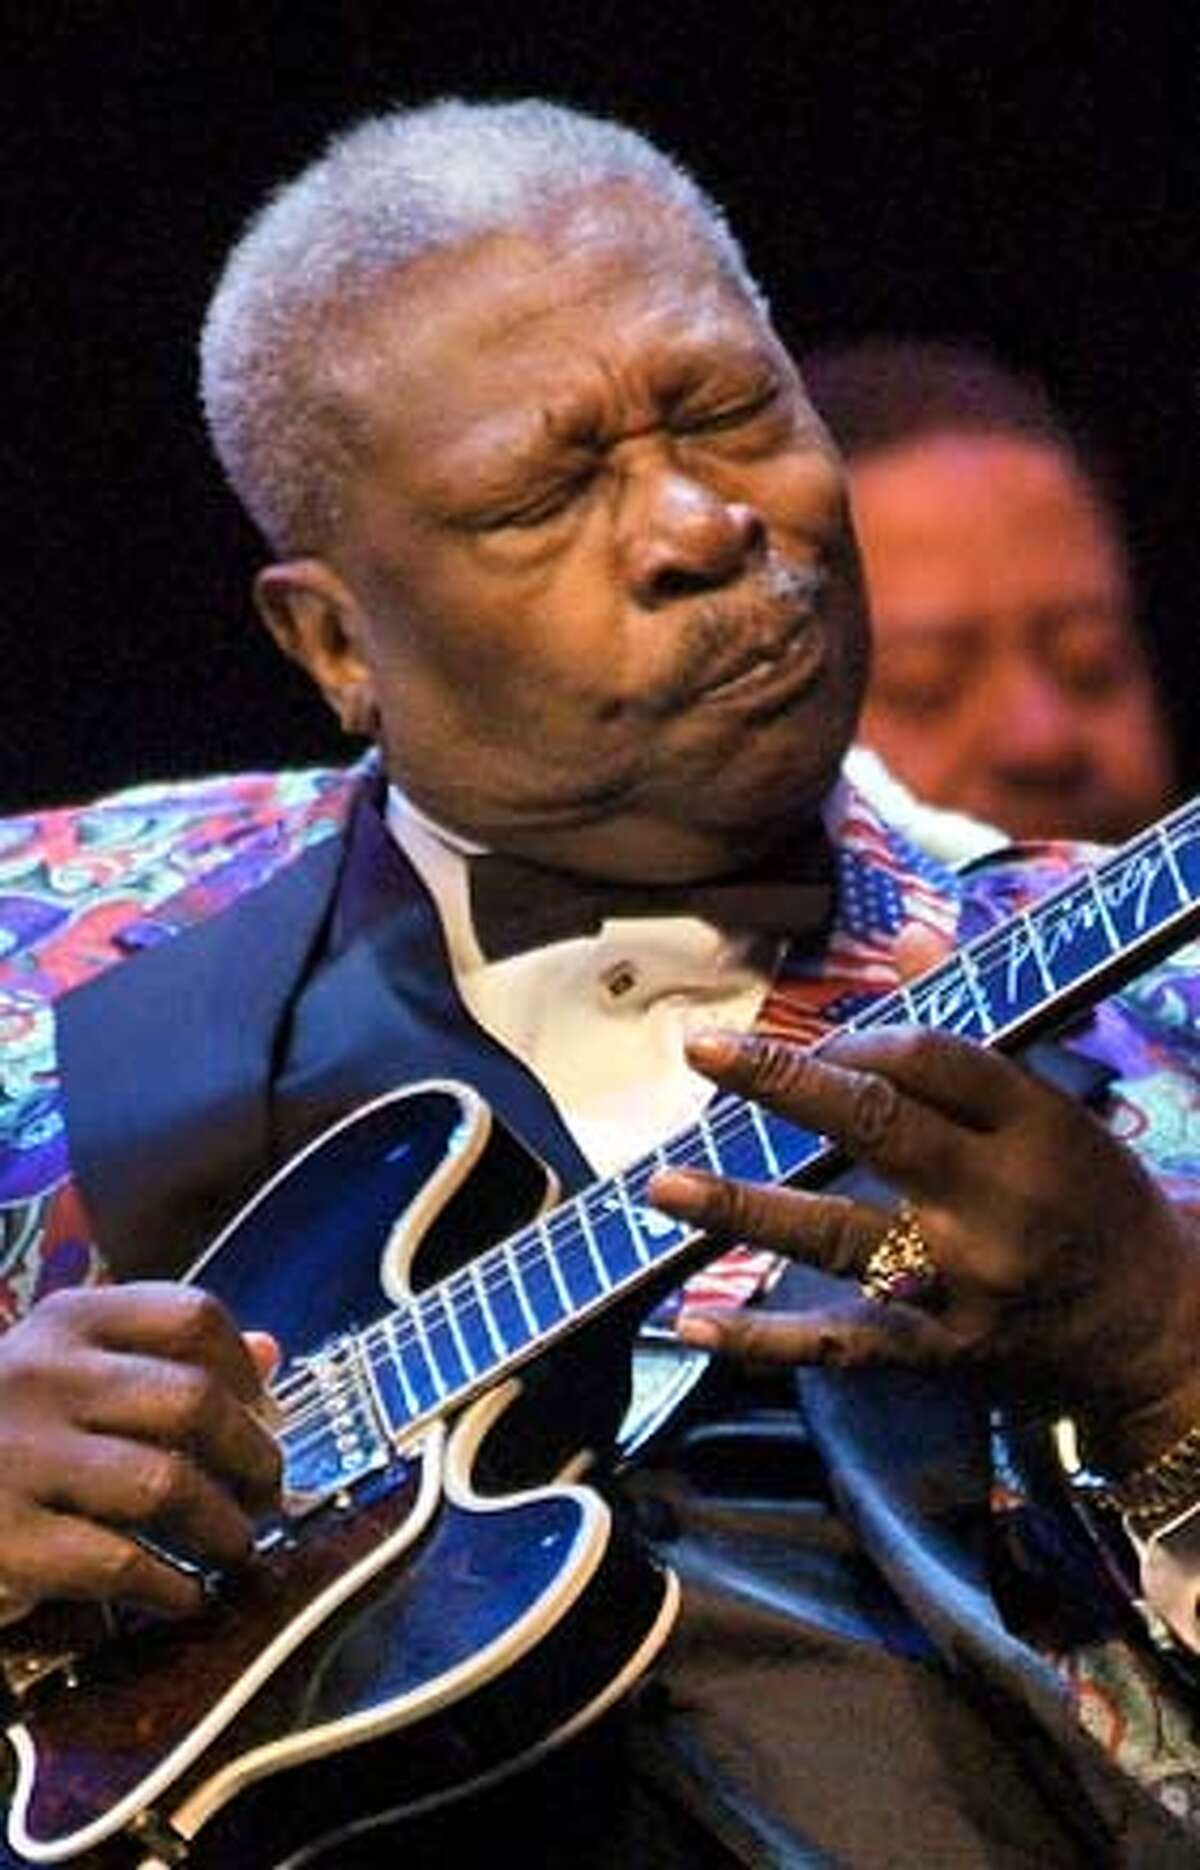 American bluesman B.B. King performs at his concert in the Kremlin in Moscow, Tuesday, May 18, 2004. (AP Photo ) Peter Rowan will perform at the Great American Music Hall on June 22. Peter Rowan will perform at the Great American Music Hall on June 22. Ran on: 08-15-2004 Photo caption